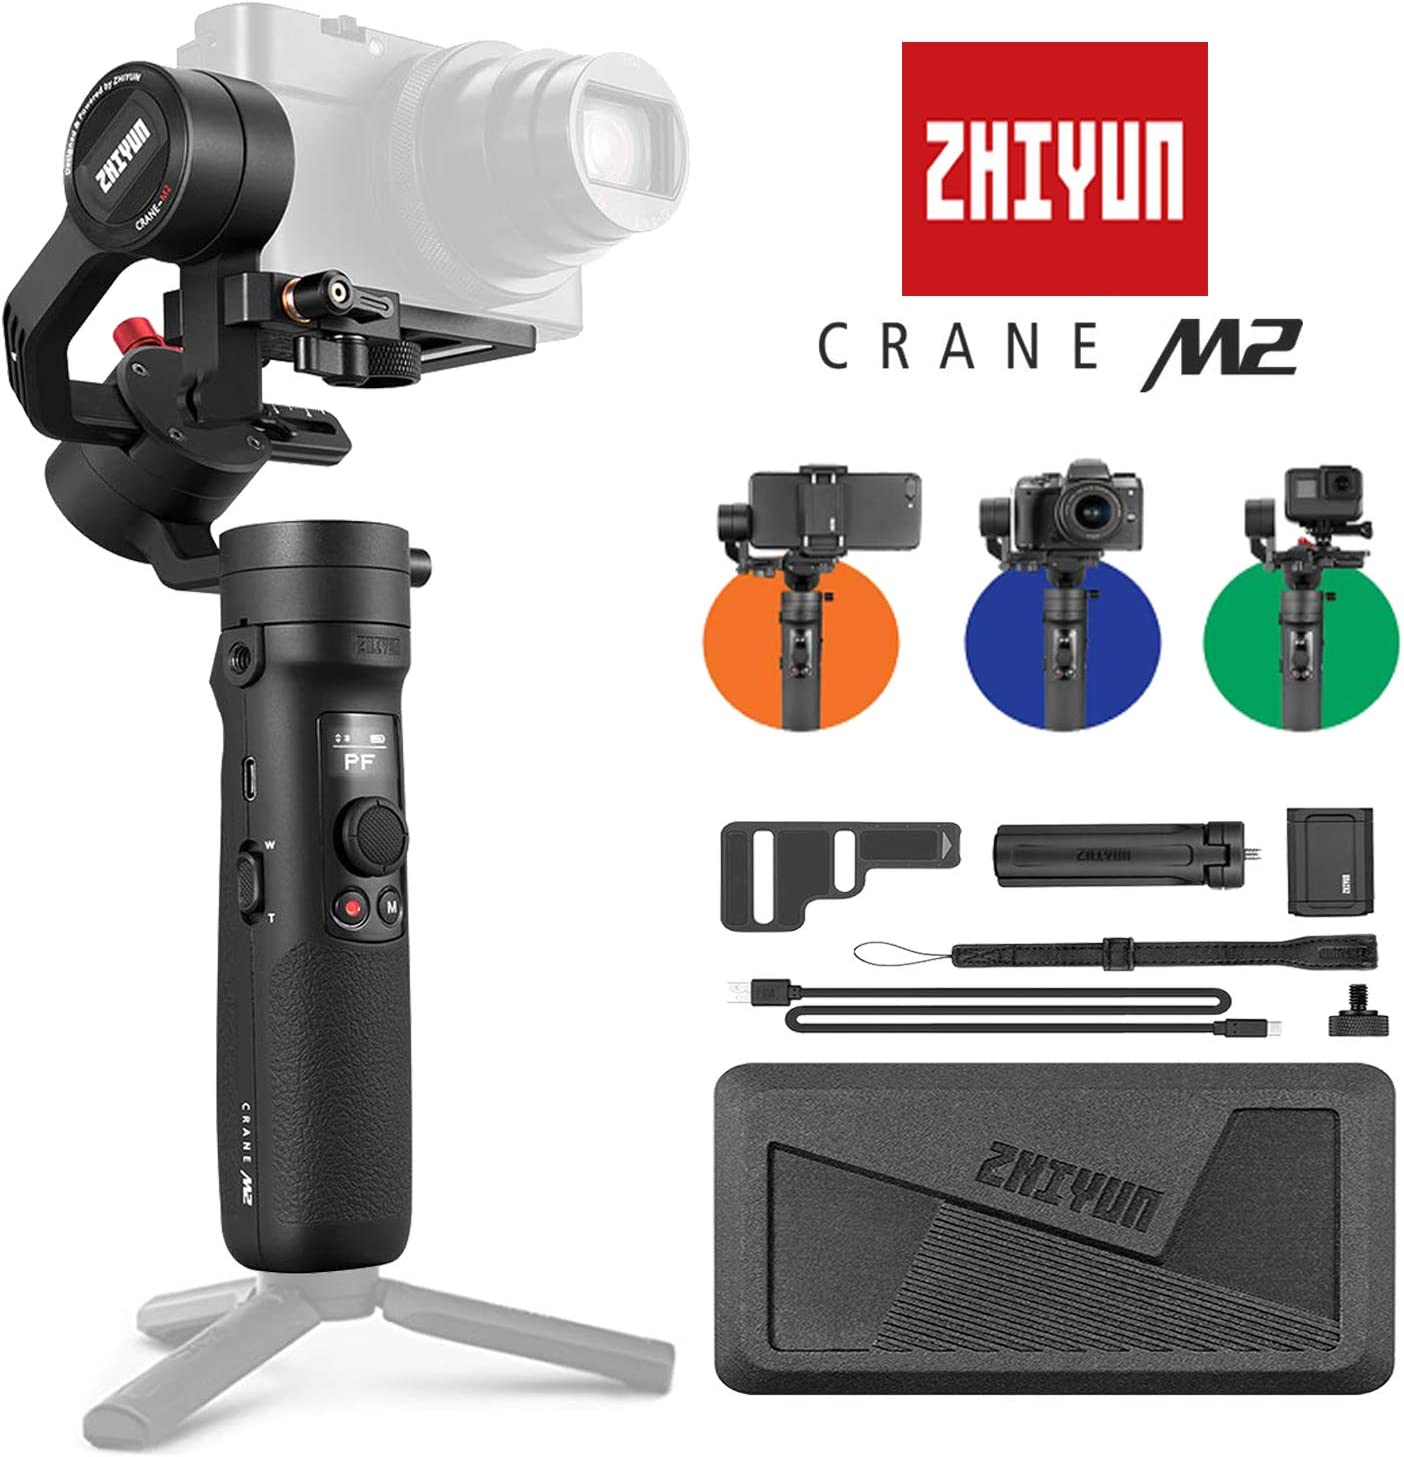 Zhiyun Crane-M2 3-Axis Handheld Gimbal Stabilizer Compatible with Sony 6400 GoPro Hero 7 iPhone X Max etc Sport Action Camera and Smartphones 720g Max Payload Mirrorless Digital Camera